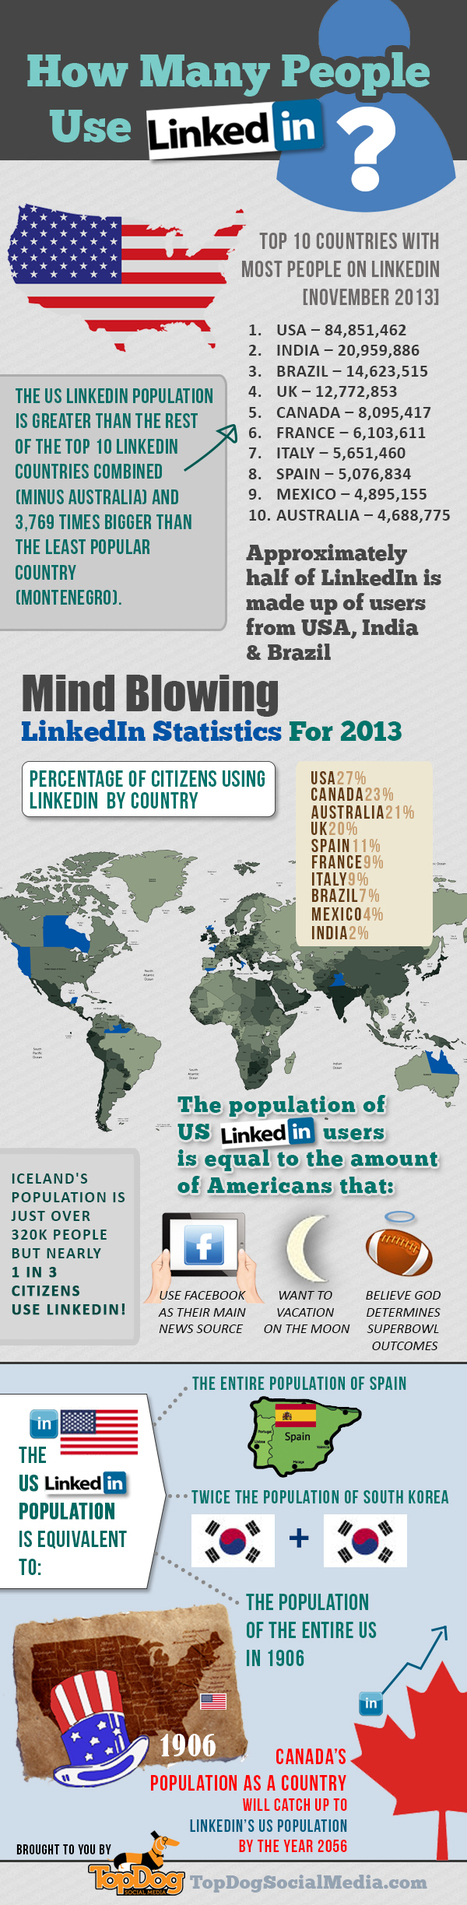 How Many People Use LinkedIn? | deSign of the Times | Scoop.it